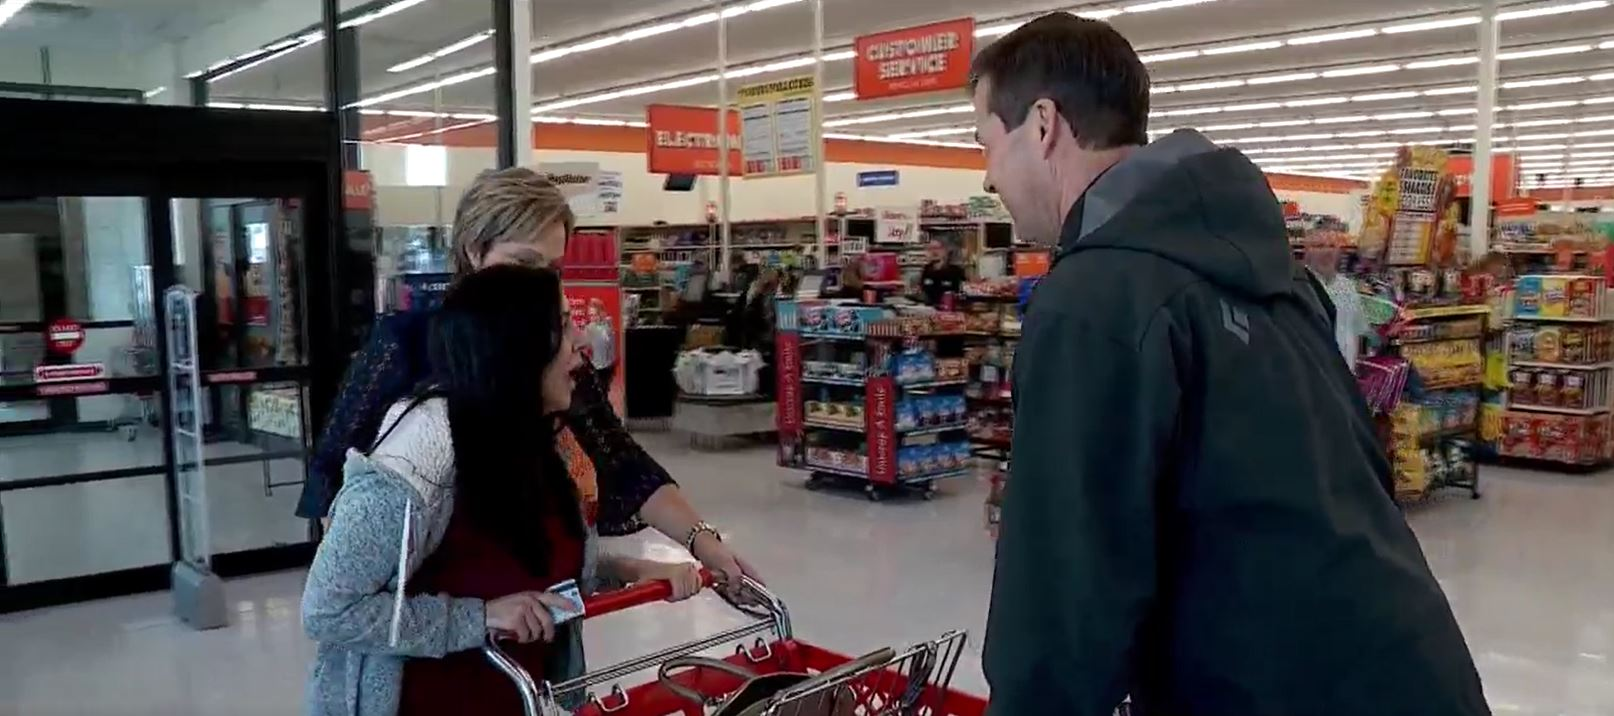 Share the Joy! Woman visits Big Lots to give to charity, receives $500 shopping spree. (Photo: KUTV)